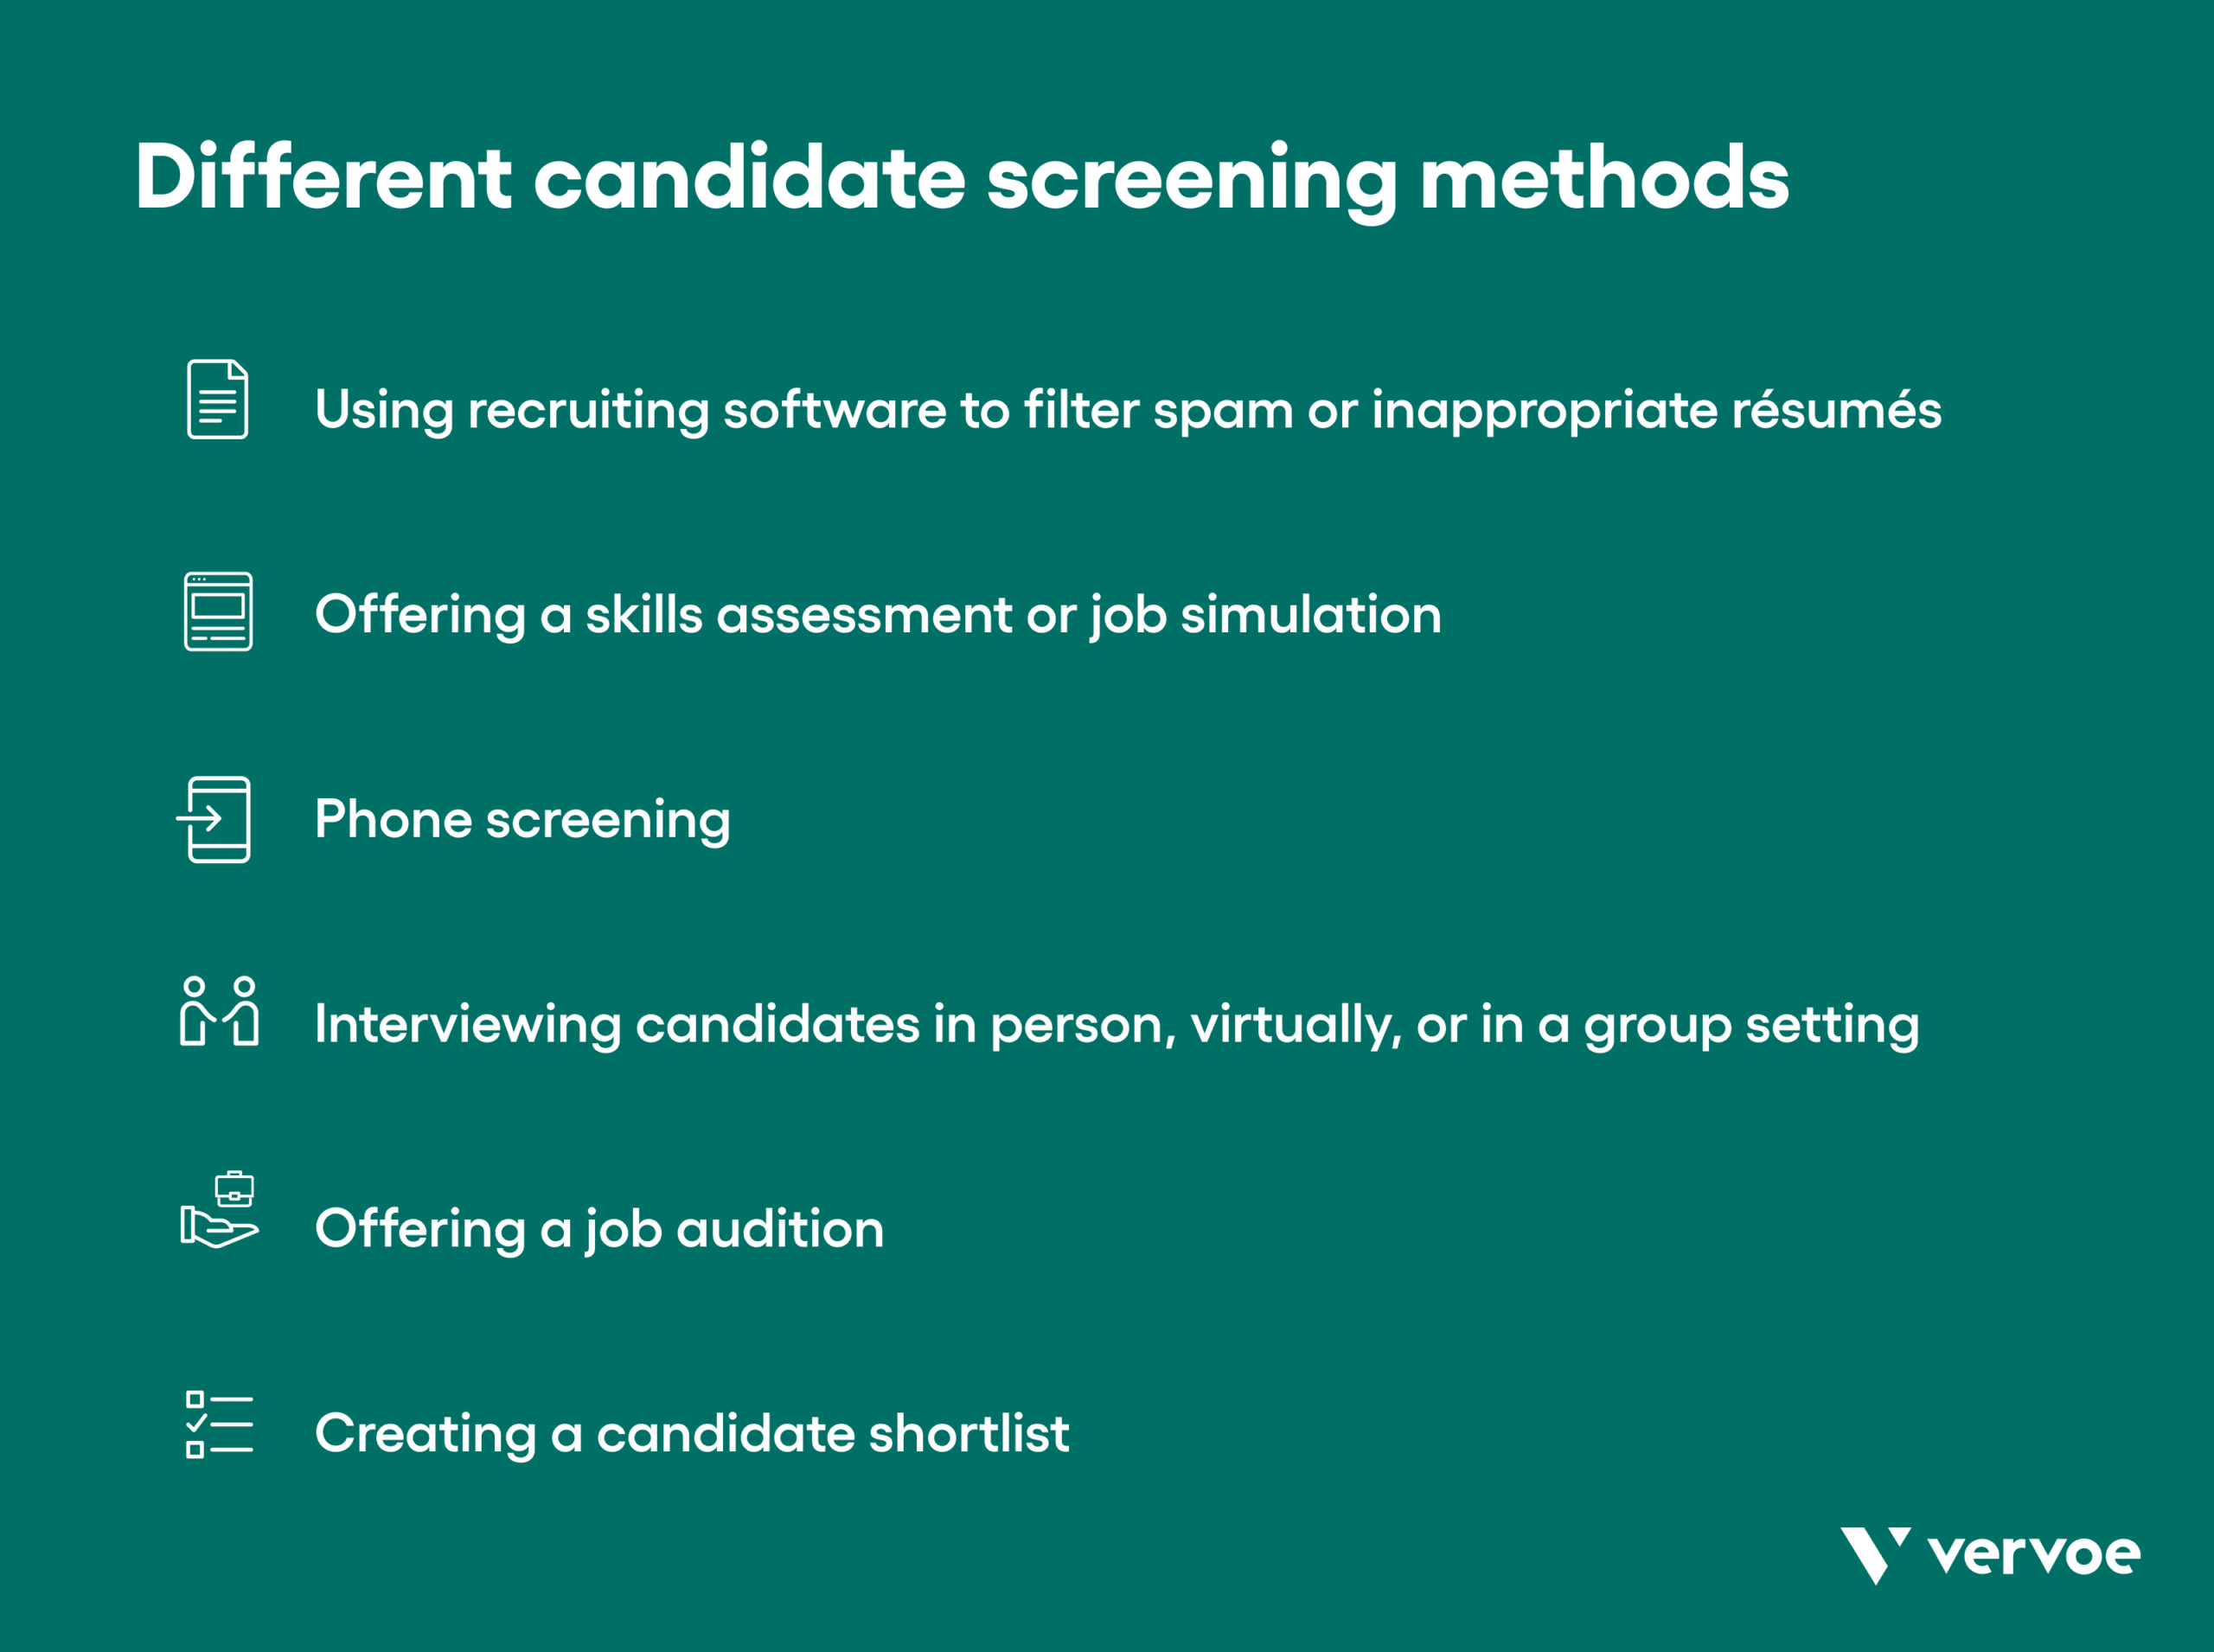 Graphic showing different candidate screening methods